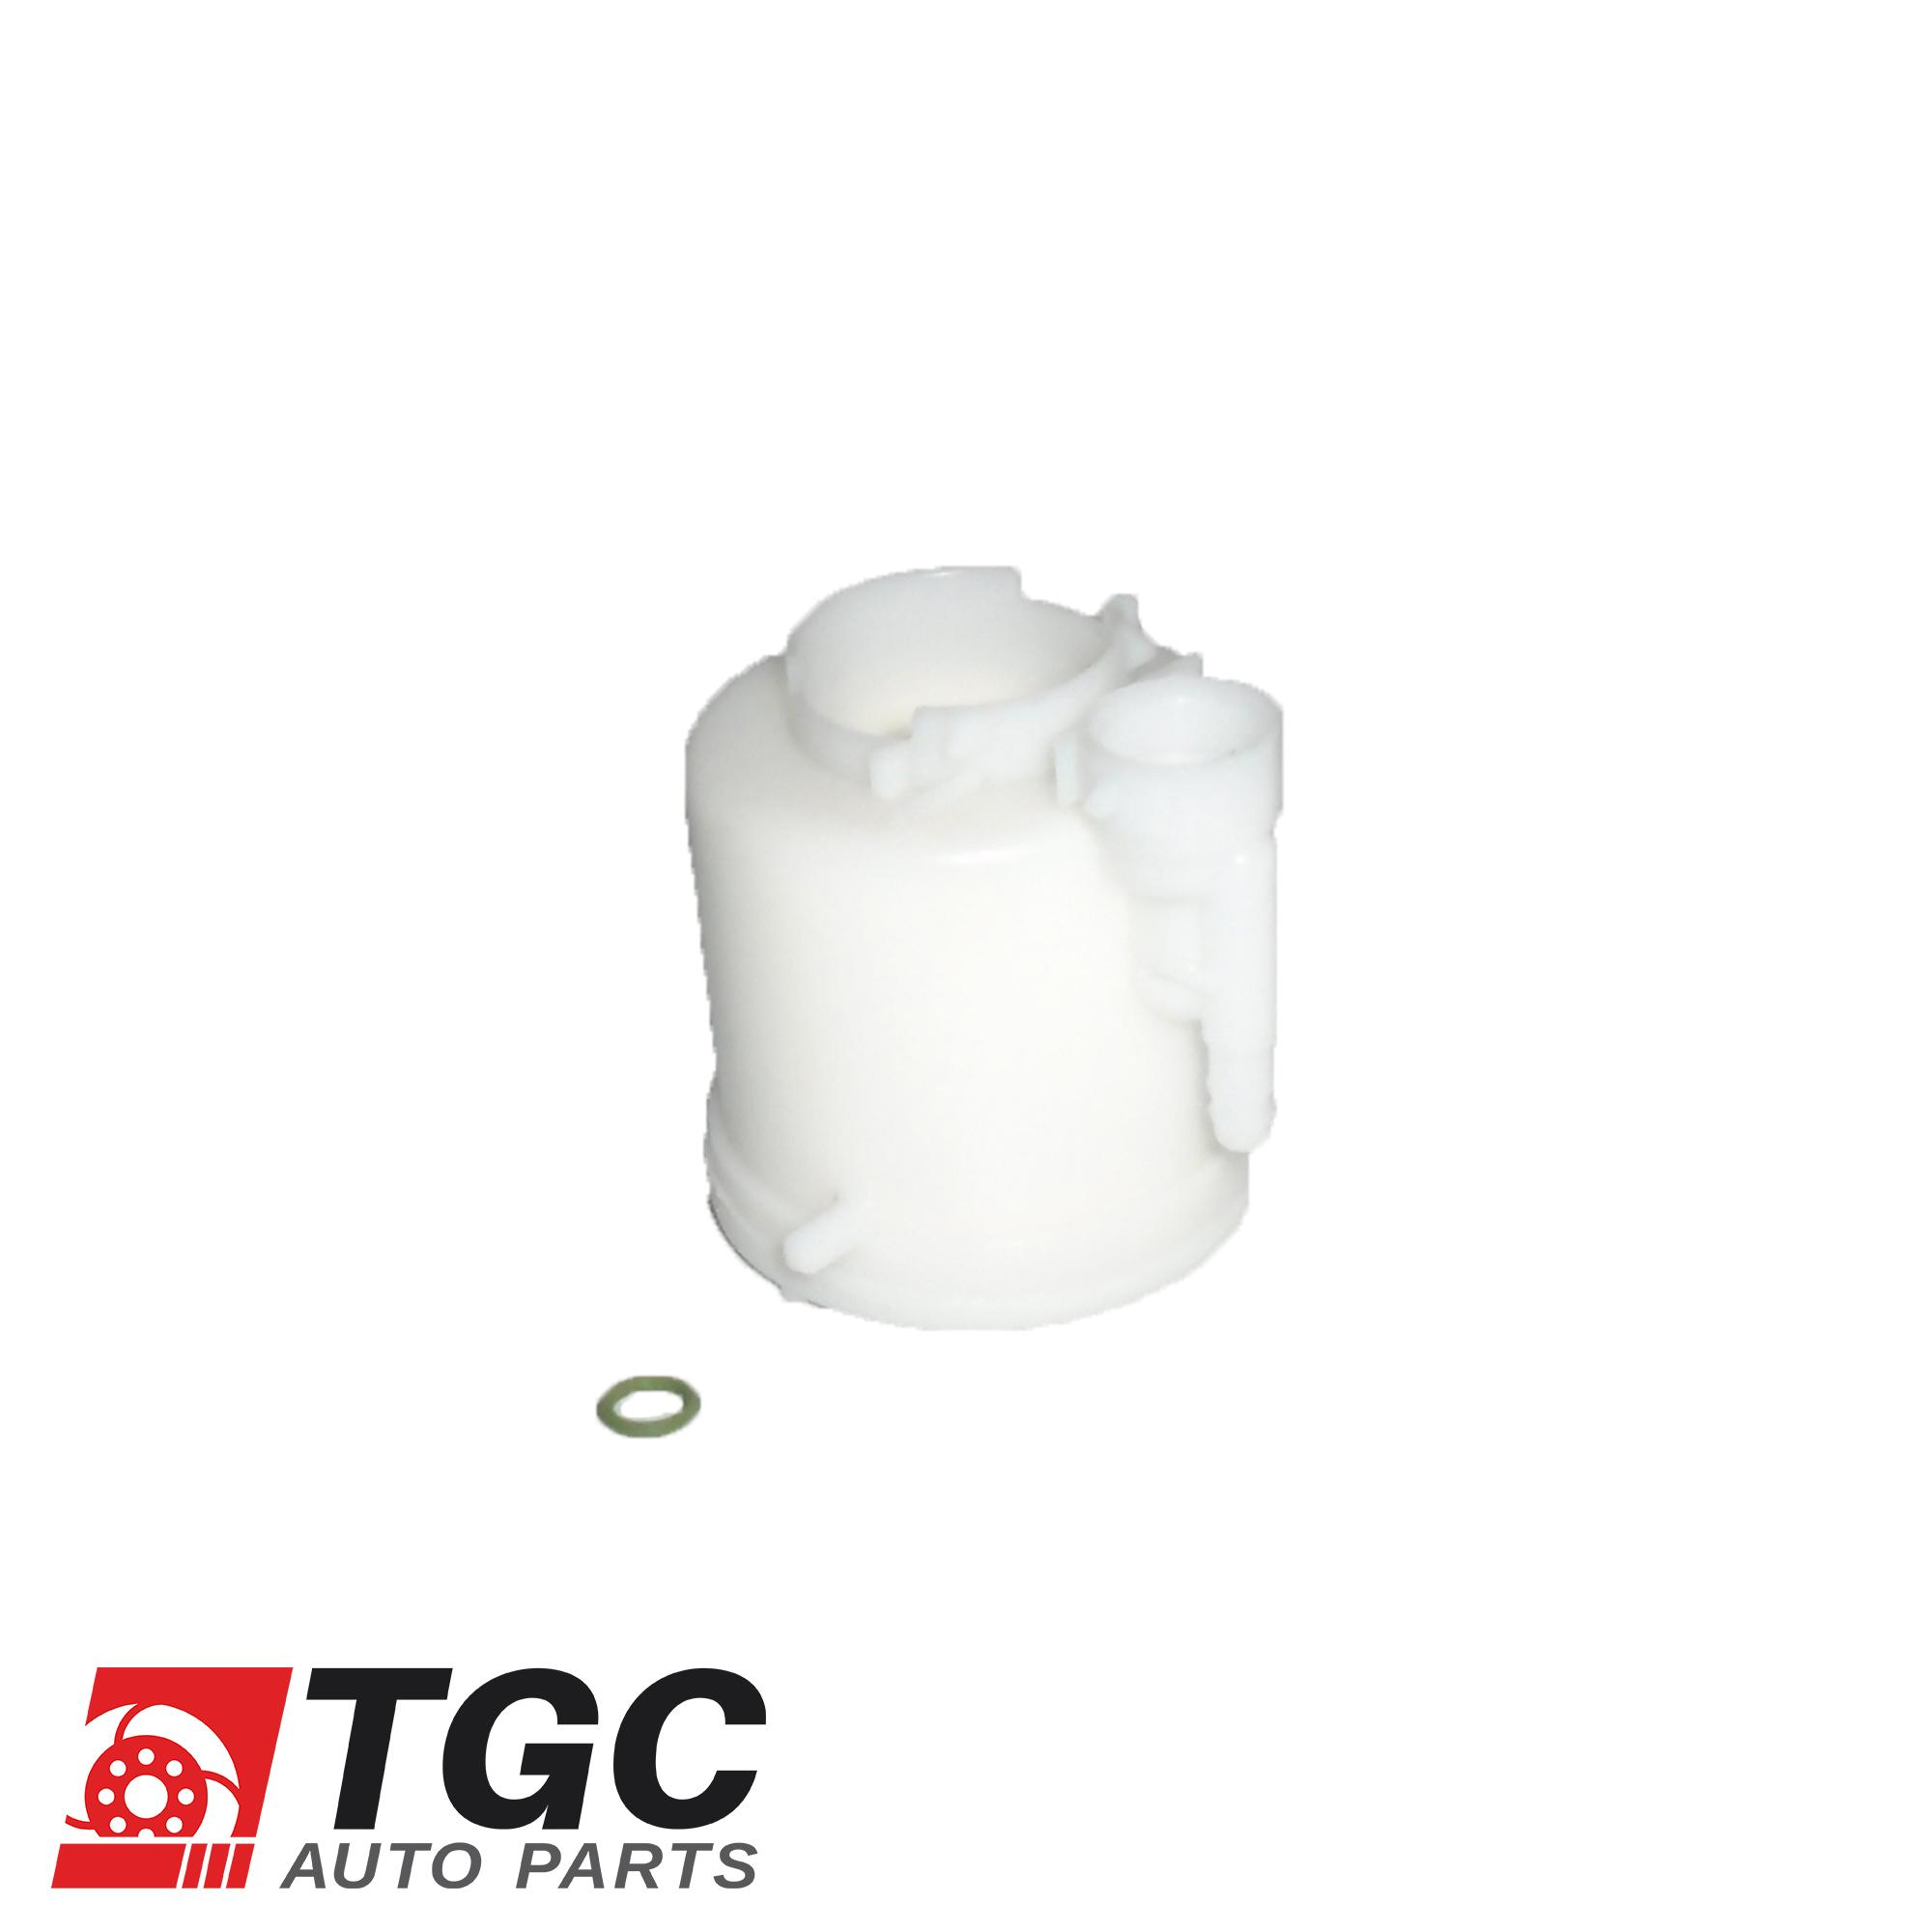 Fuel Filter For Sale Gas Online Brands Prices Reviews In Toyota 2002 4 Cylinder Camry Location Fleetmax Ffs 1579 Small Vios 2008 2012